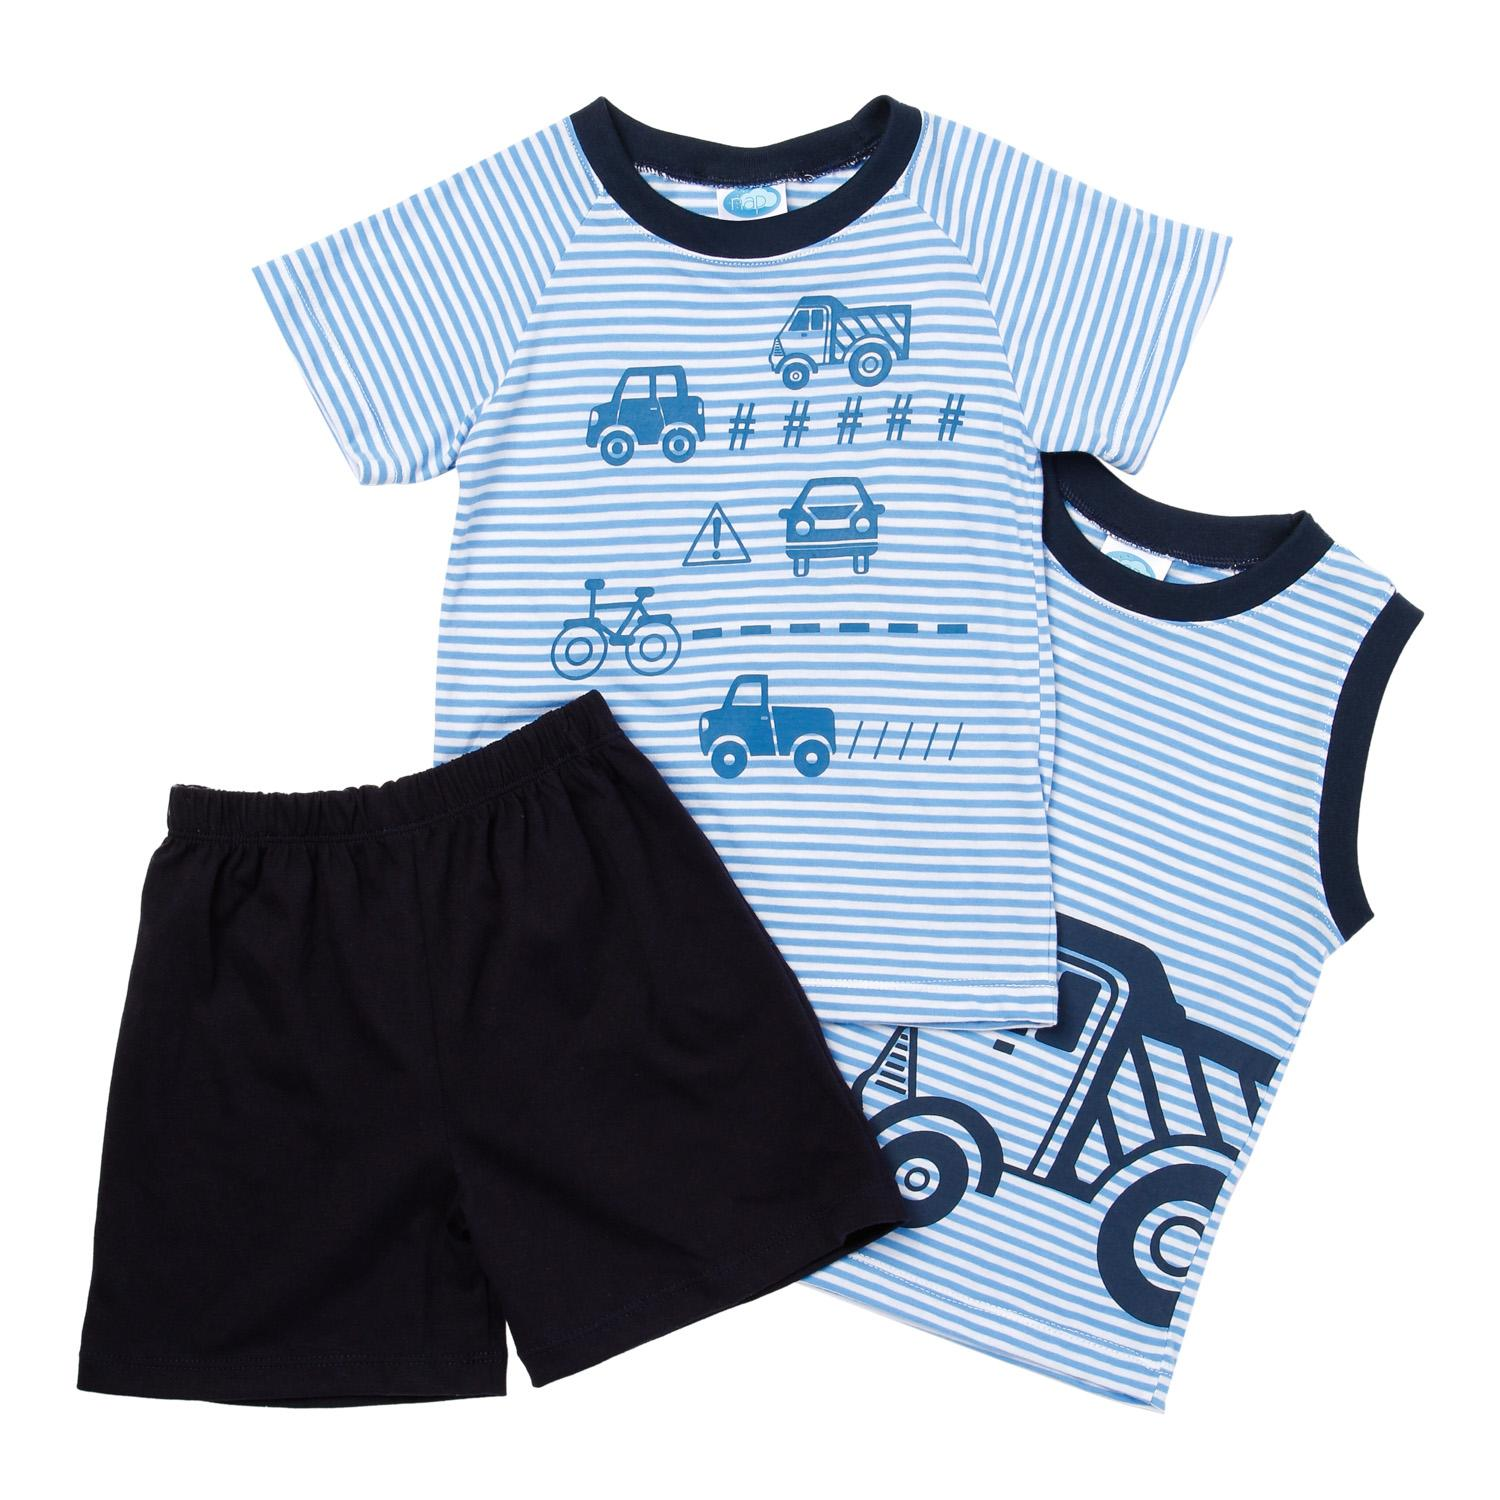 e6862650d31b Boys Clothing for sale - Baby Clothing for Boys online brands ...